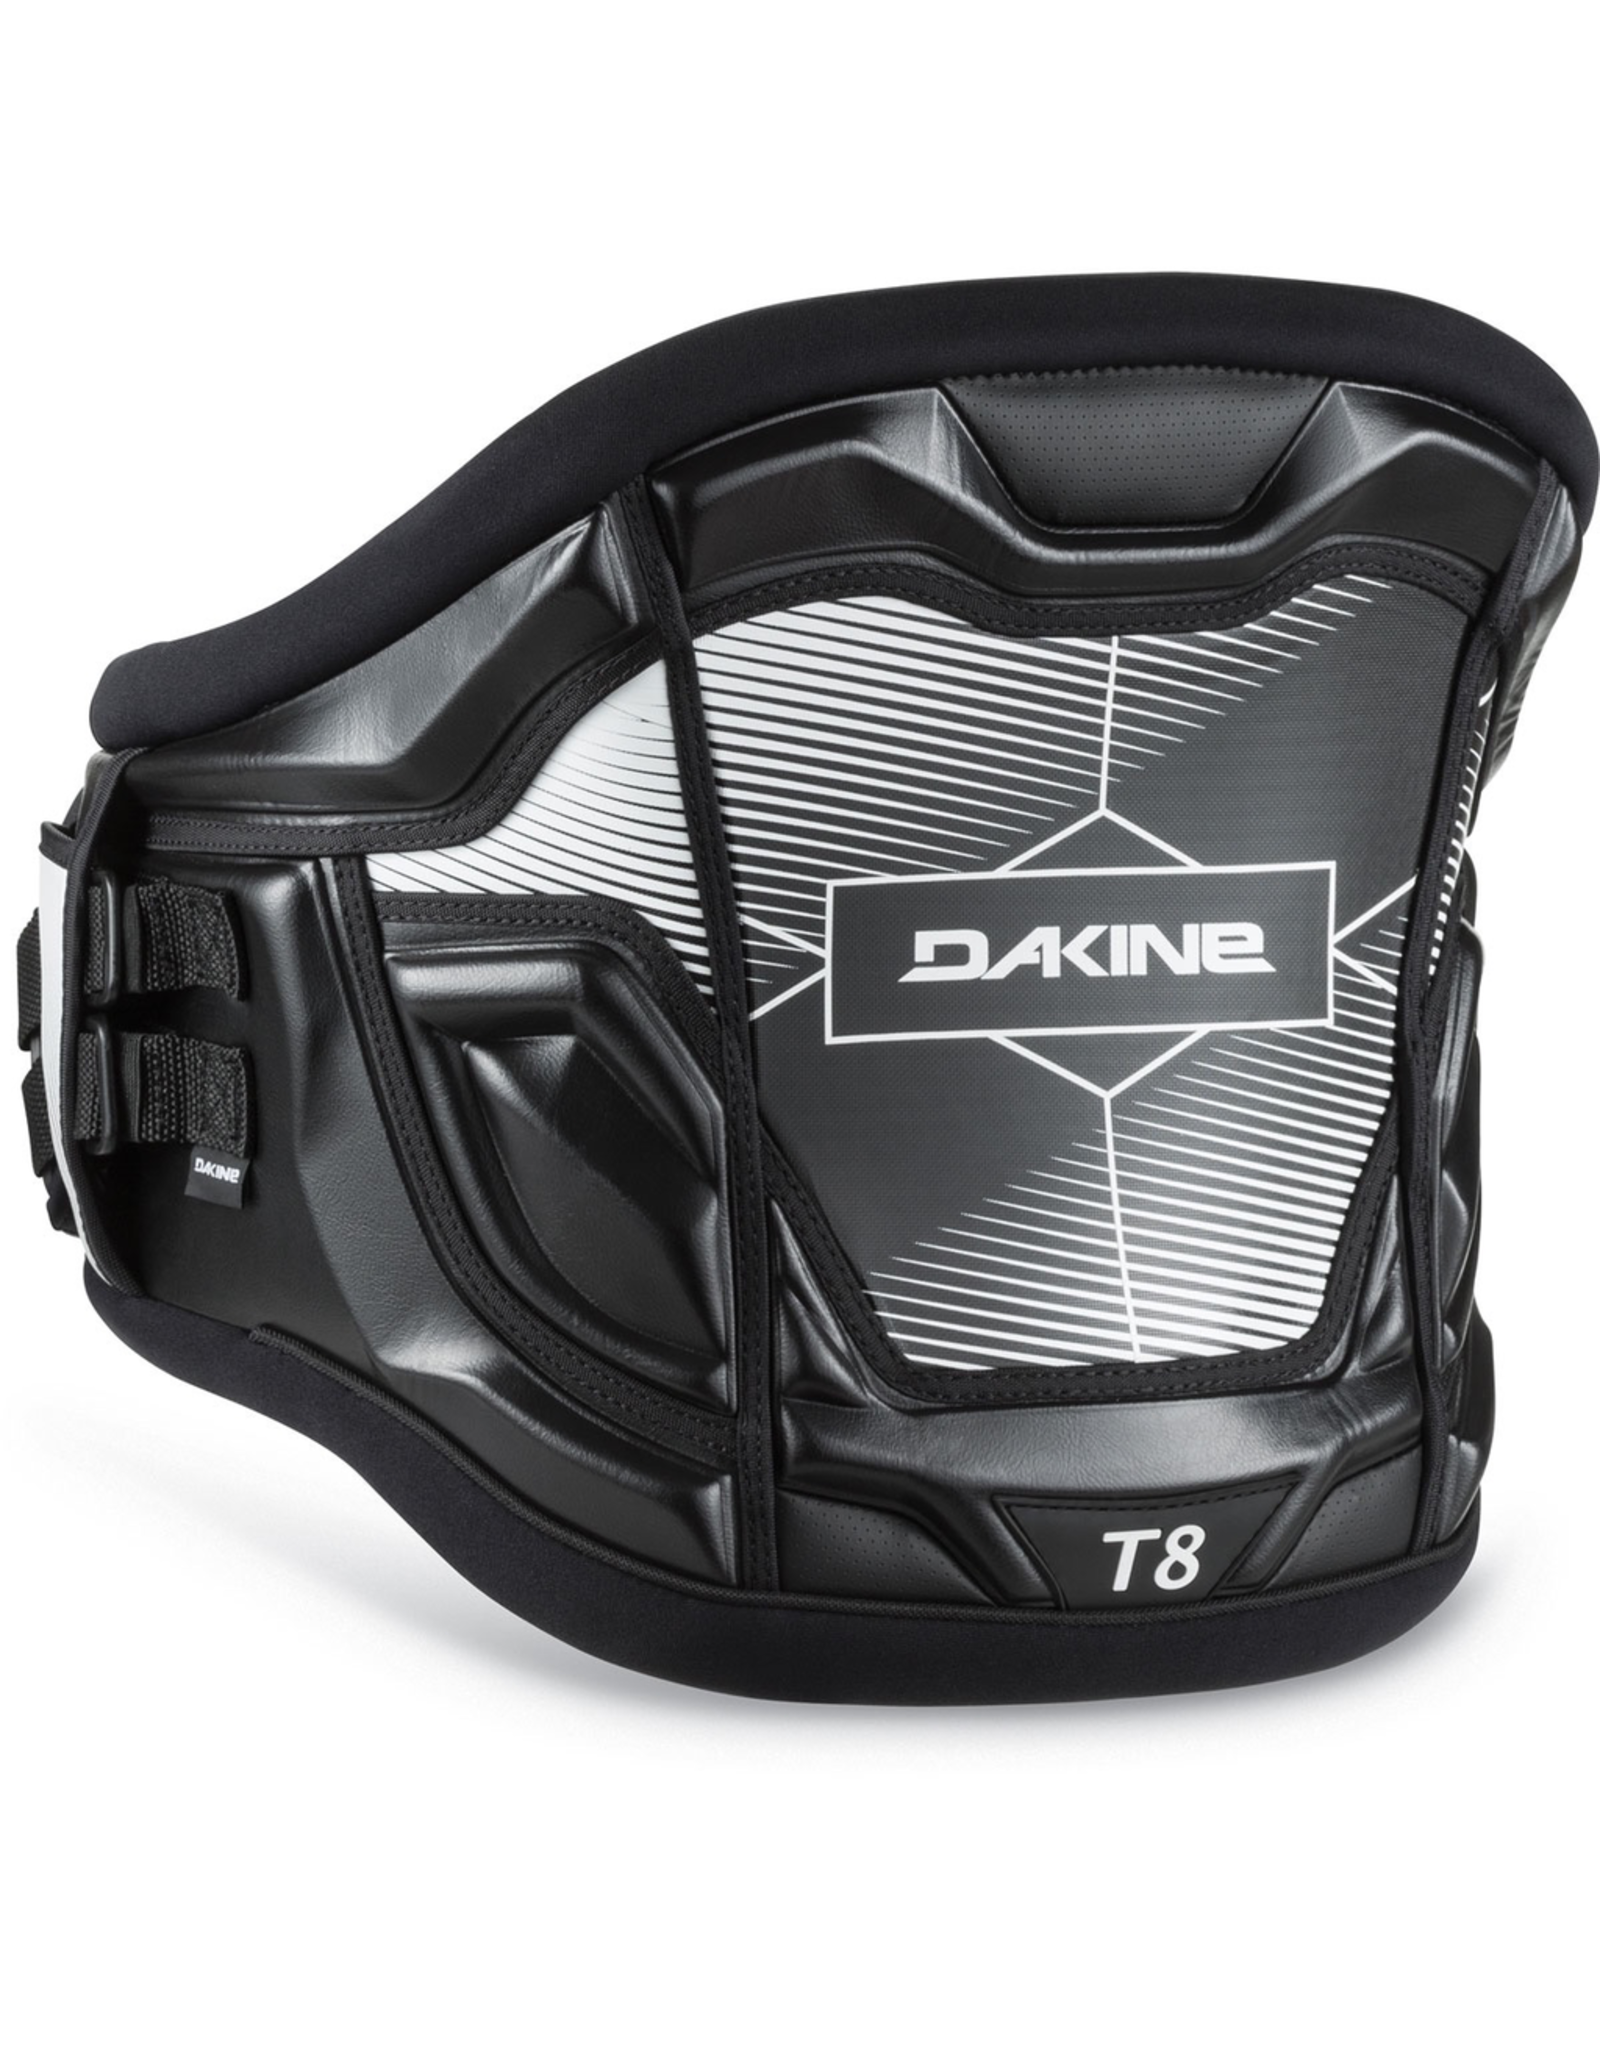 Dakine Dakine - T-8 - XL - PushButton